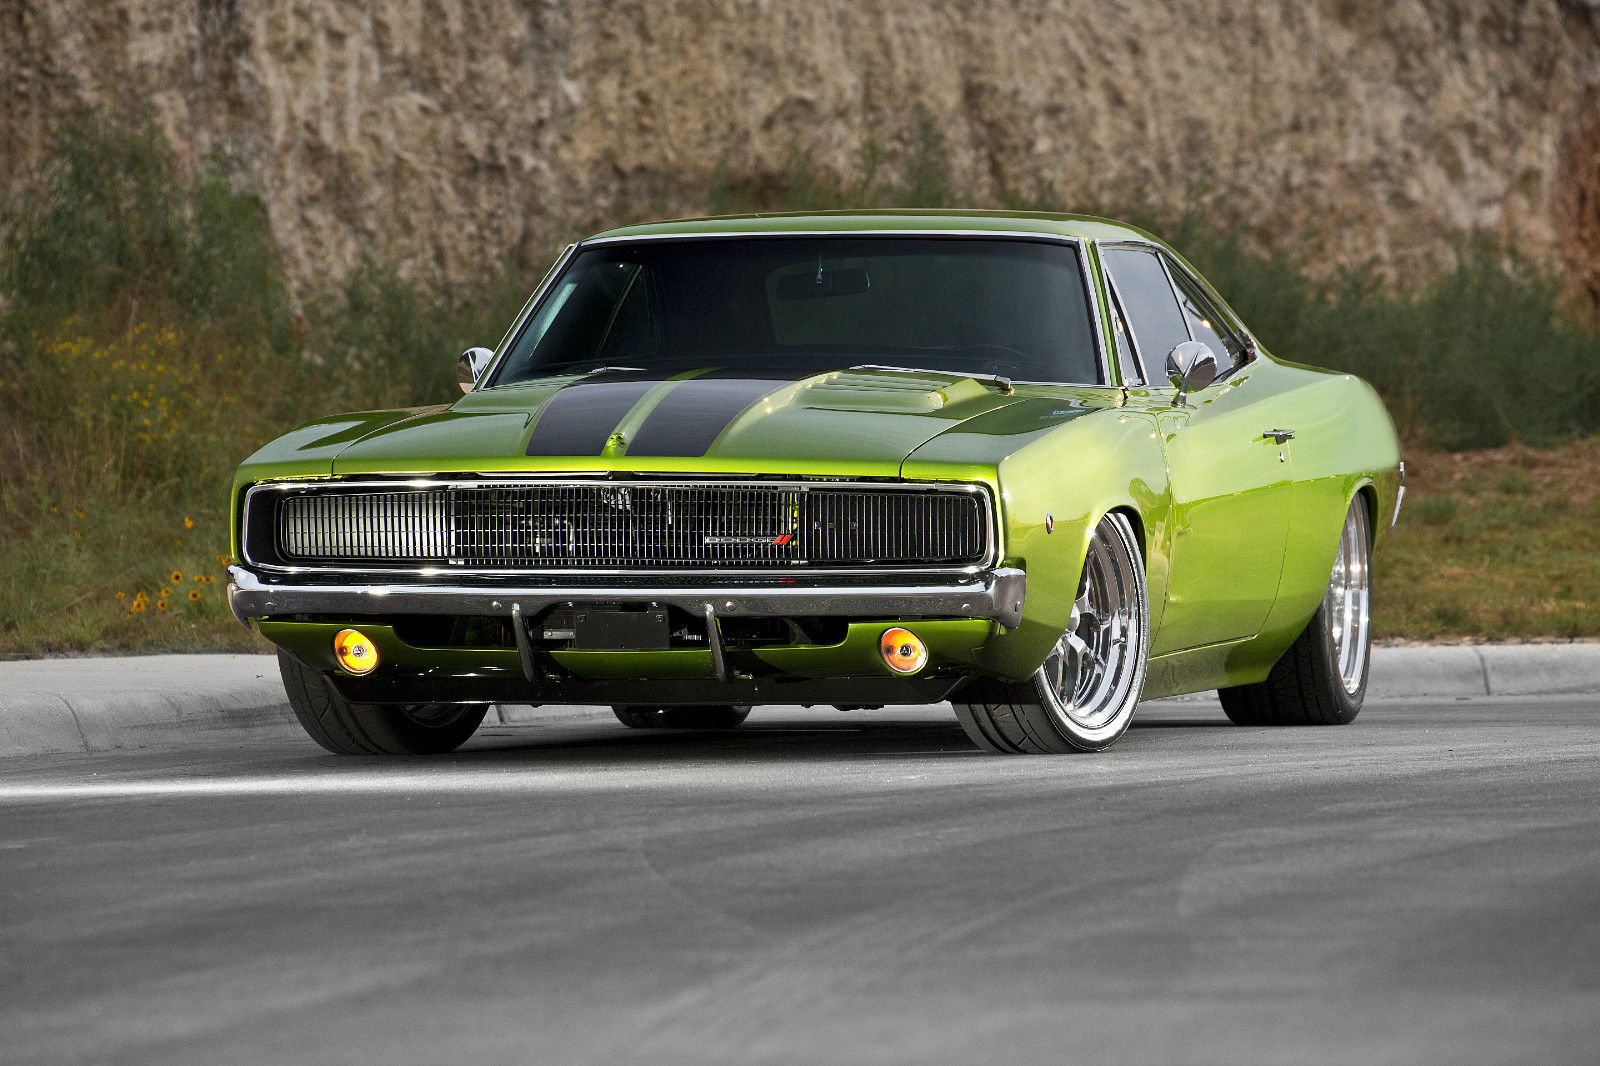 ebay find: 1968 dodge charger | amcarguide - american muscle car